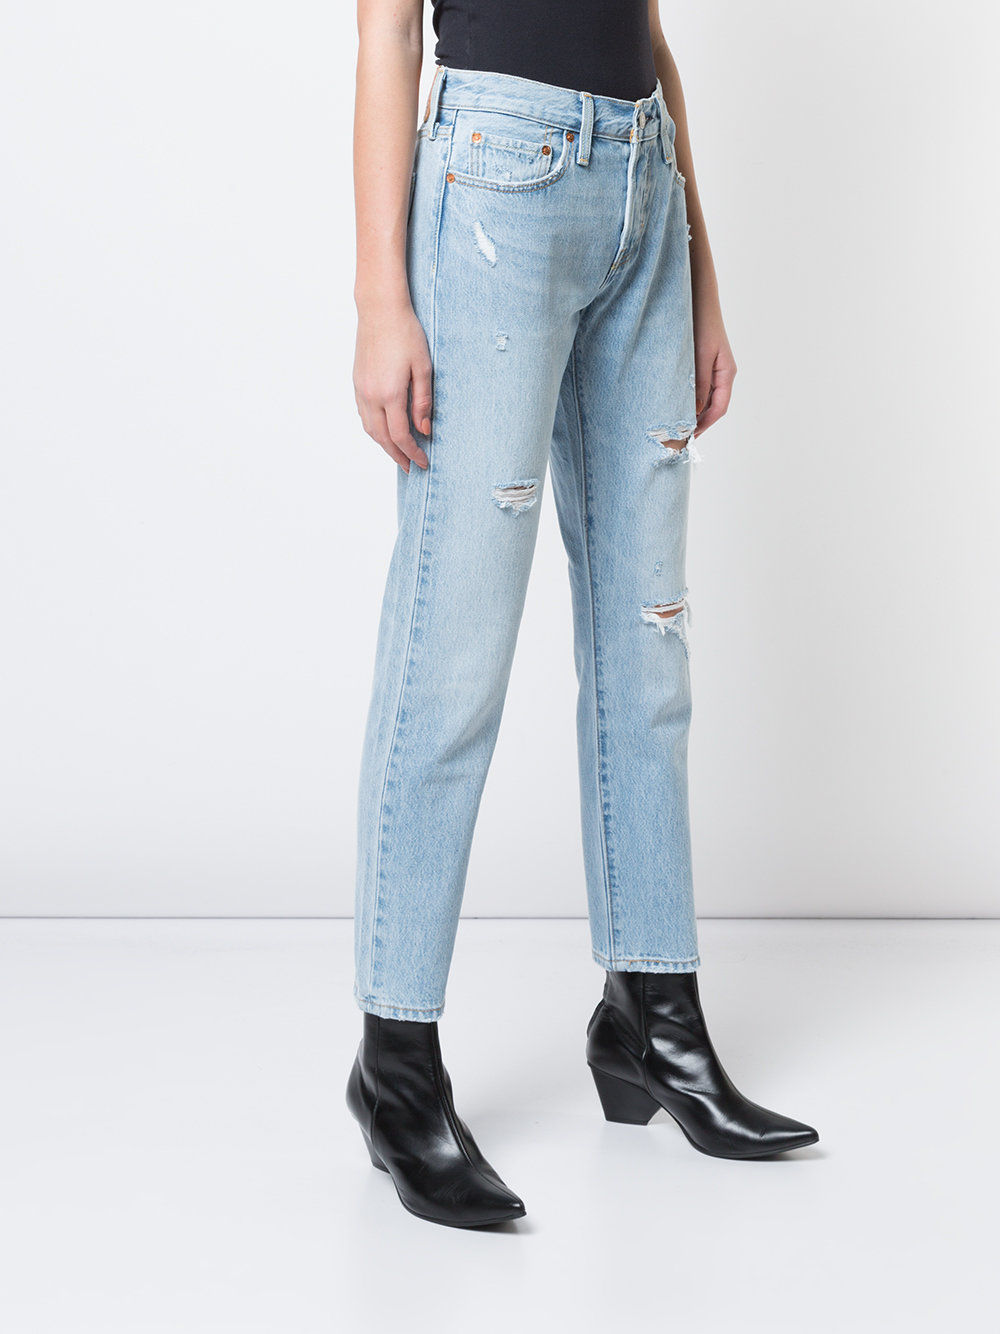 Levis - these are my fav jeans I wear all the time